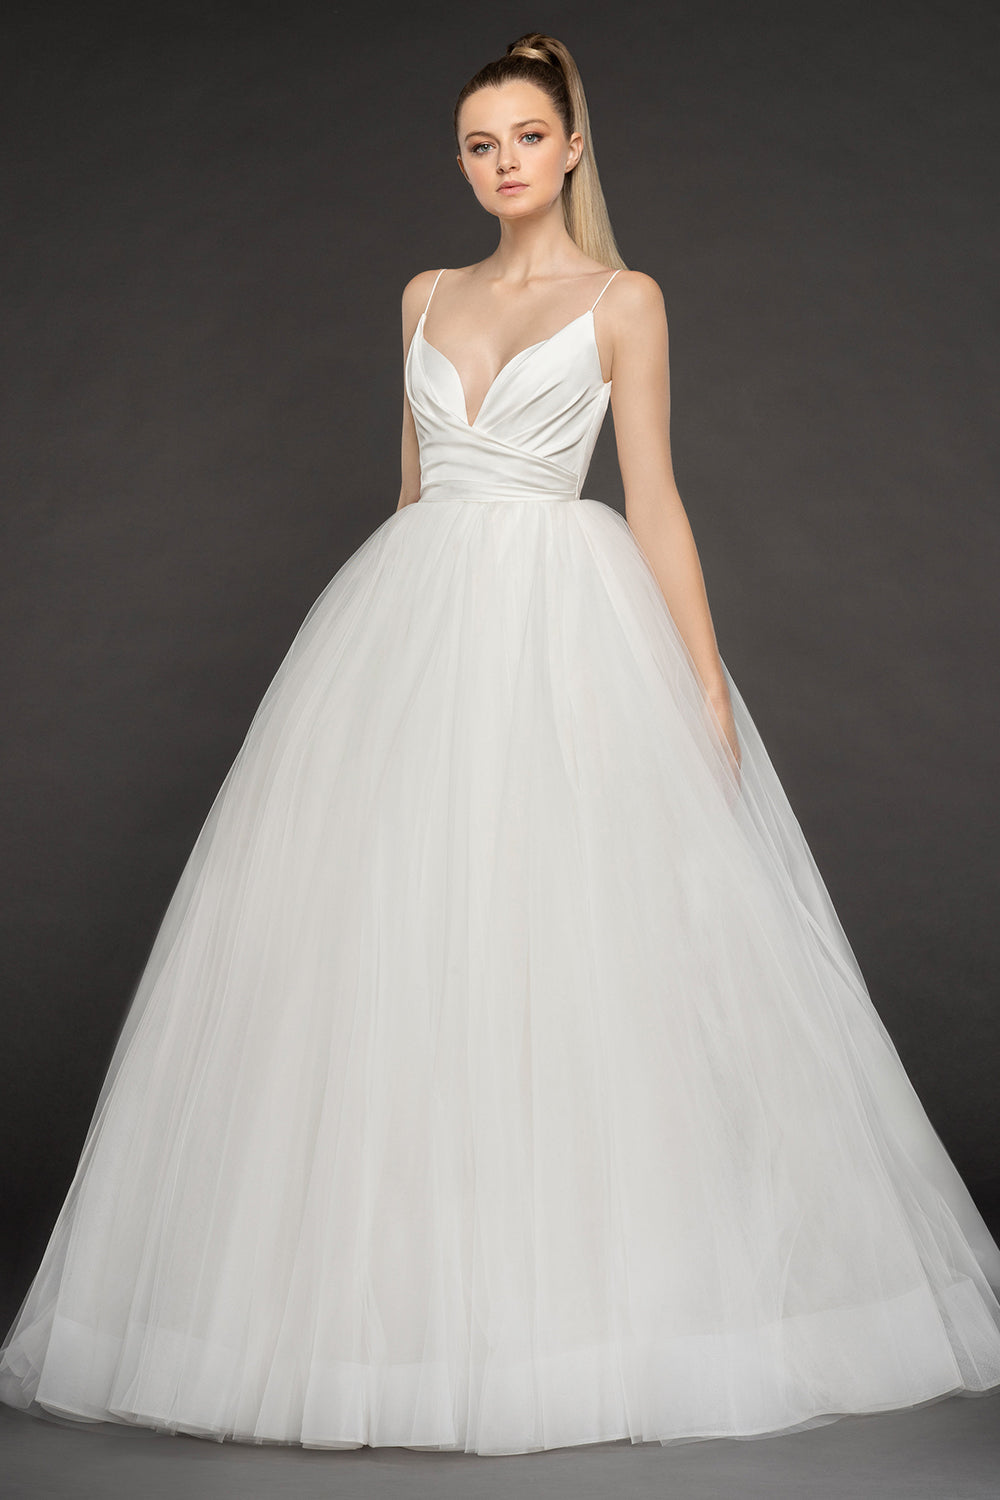 Olympia, Gown, Blush by Hayley Paige - Eternal Bridal